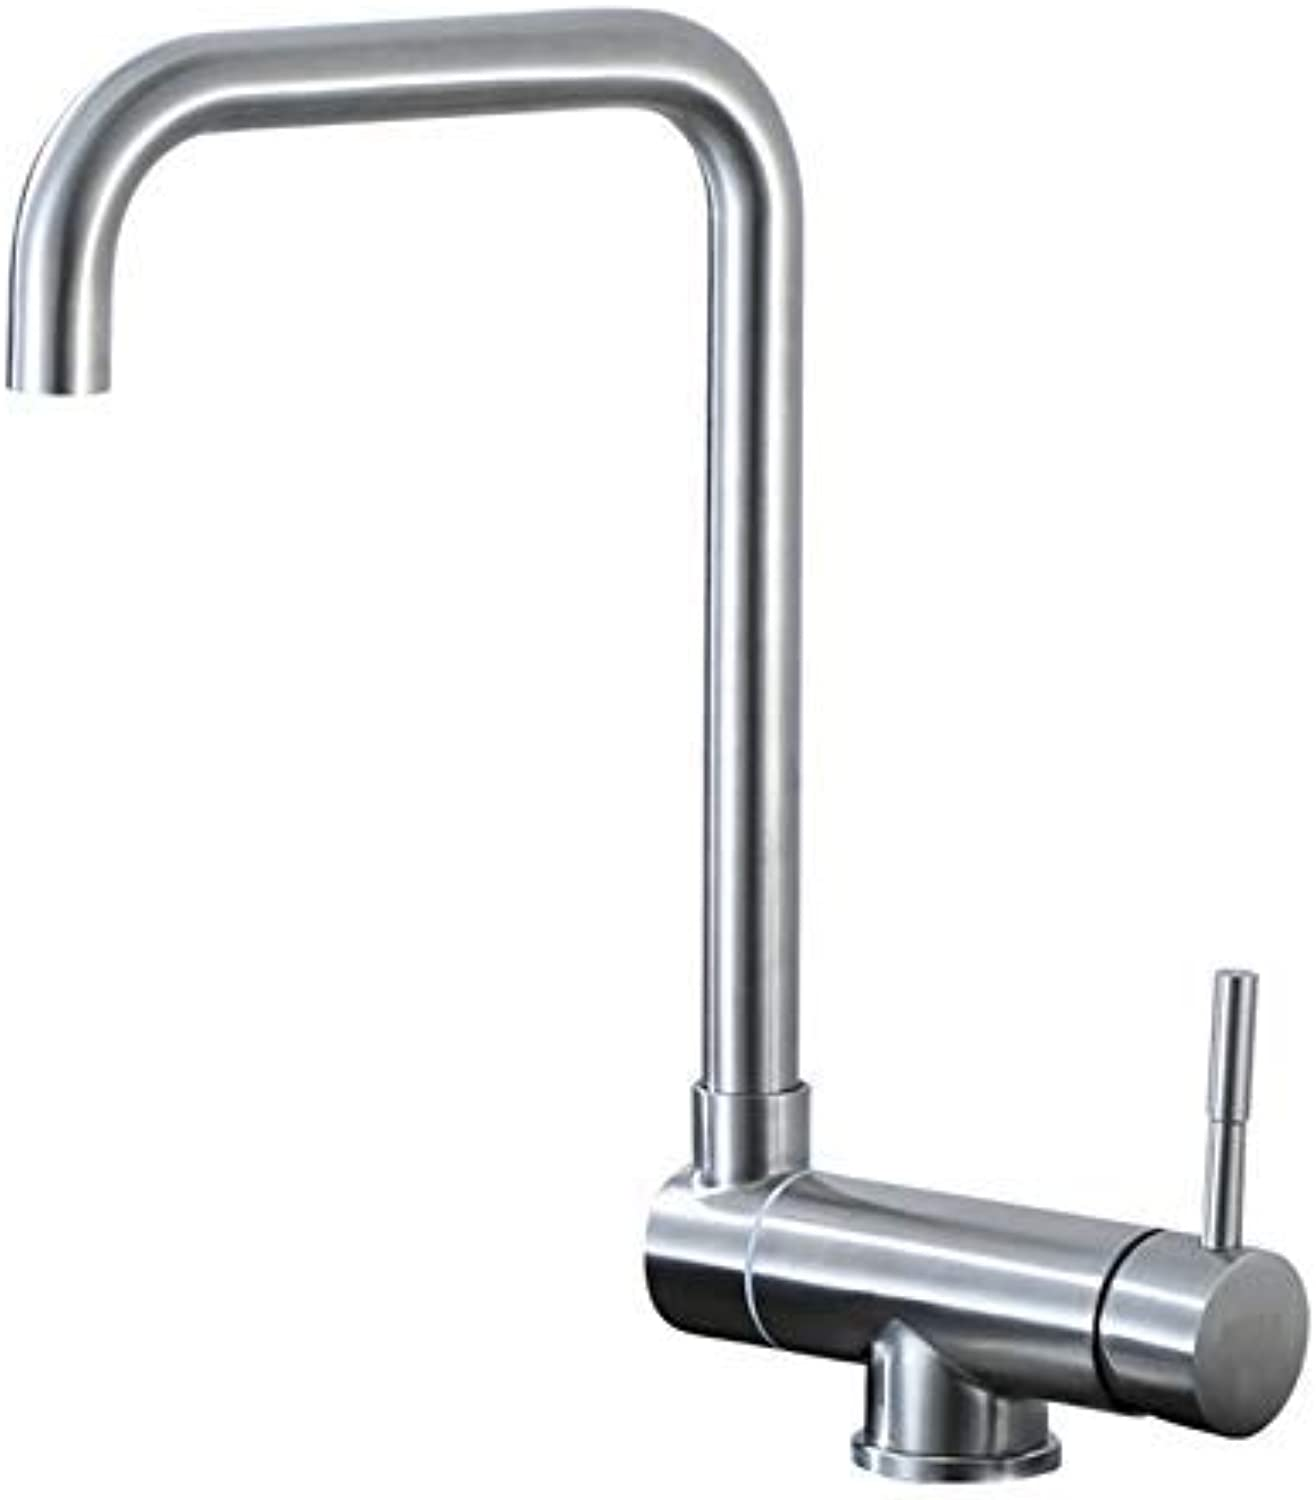 MONFS-Bathroom tap Taps Kitchen Sink Hot And Cold Water Faucet 304 Stainless Steel Brushed Sink Sink Faucet